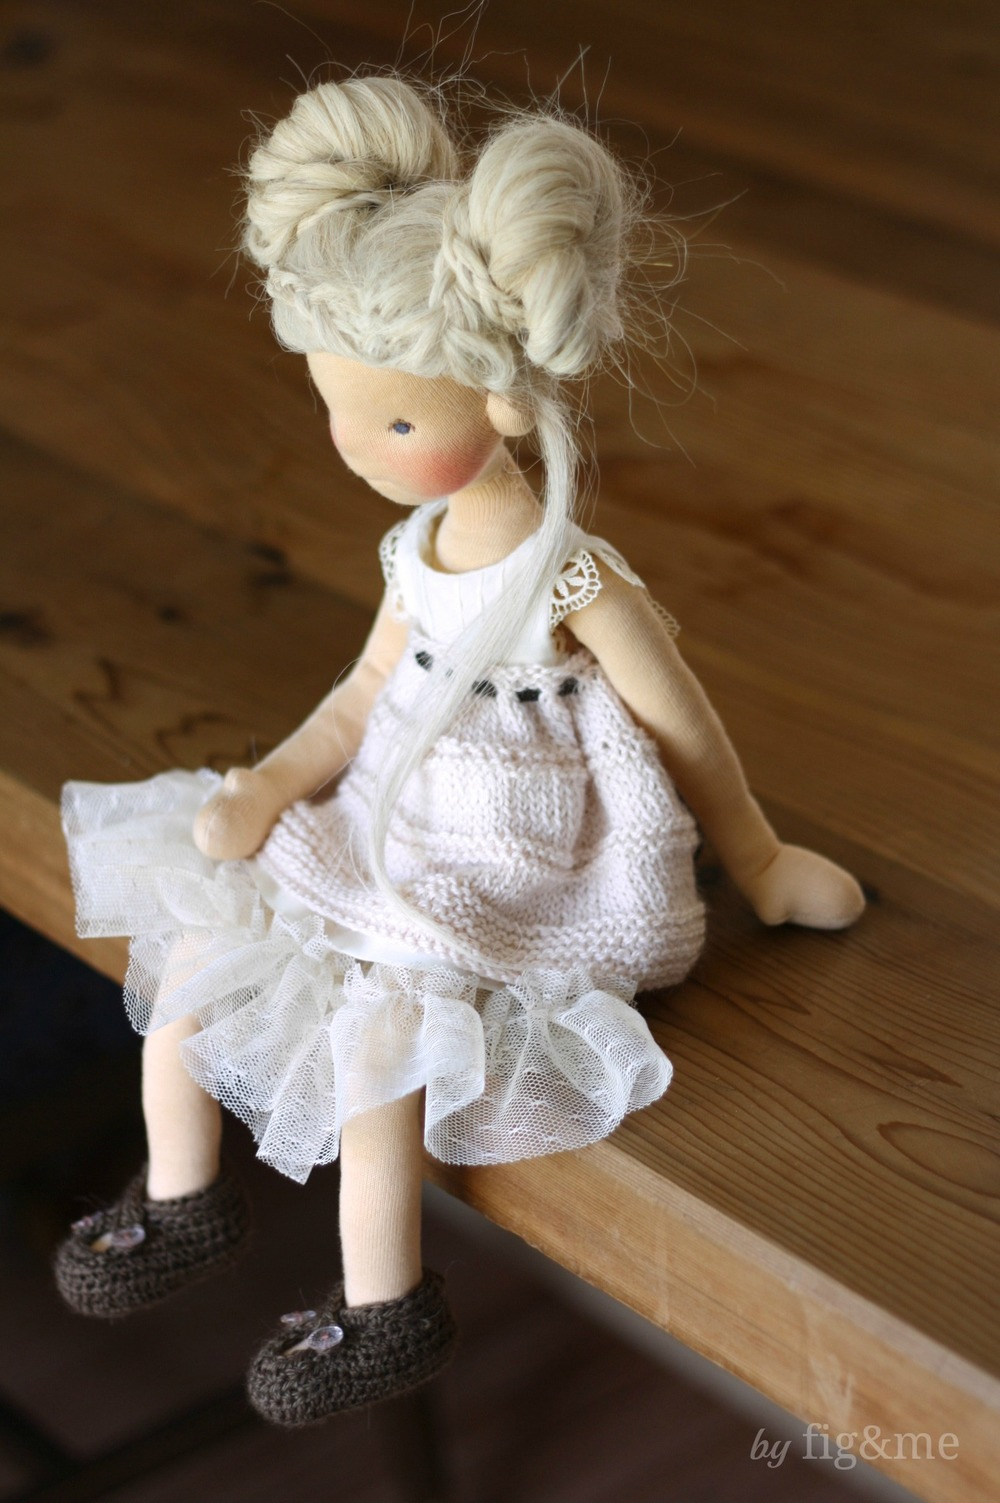 Cygnet, a Mannikin (wool sculpture) doll by Fig and me, in her dainty new clothes.